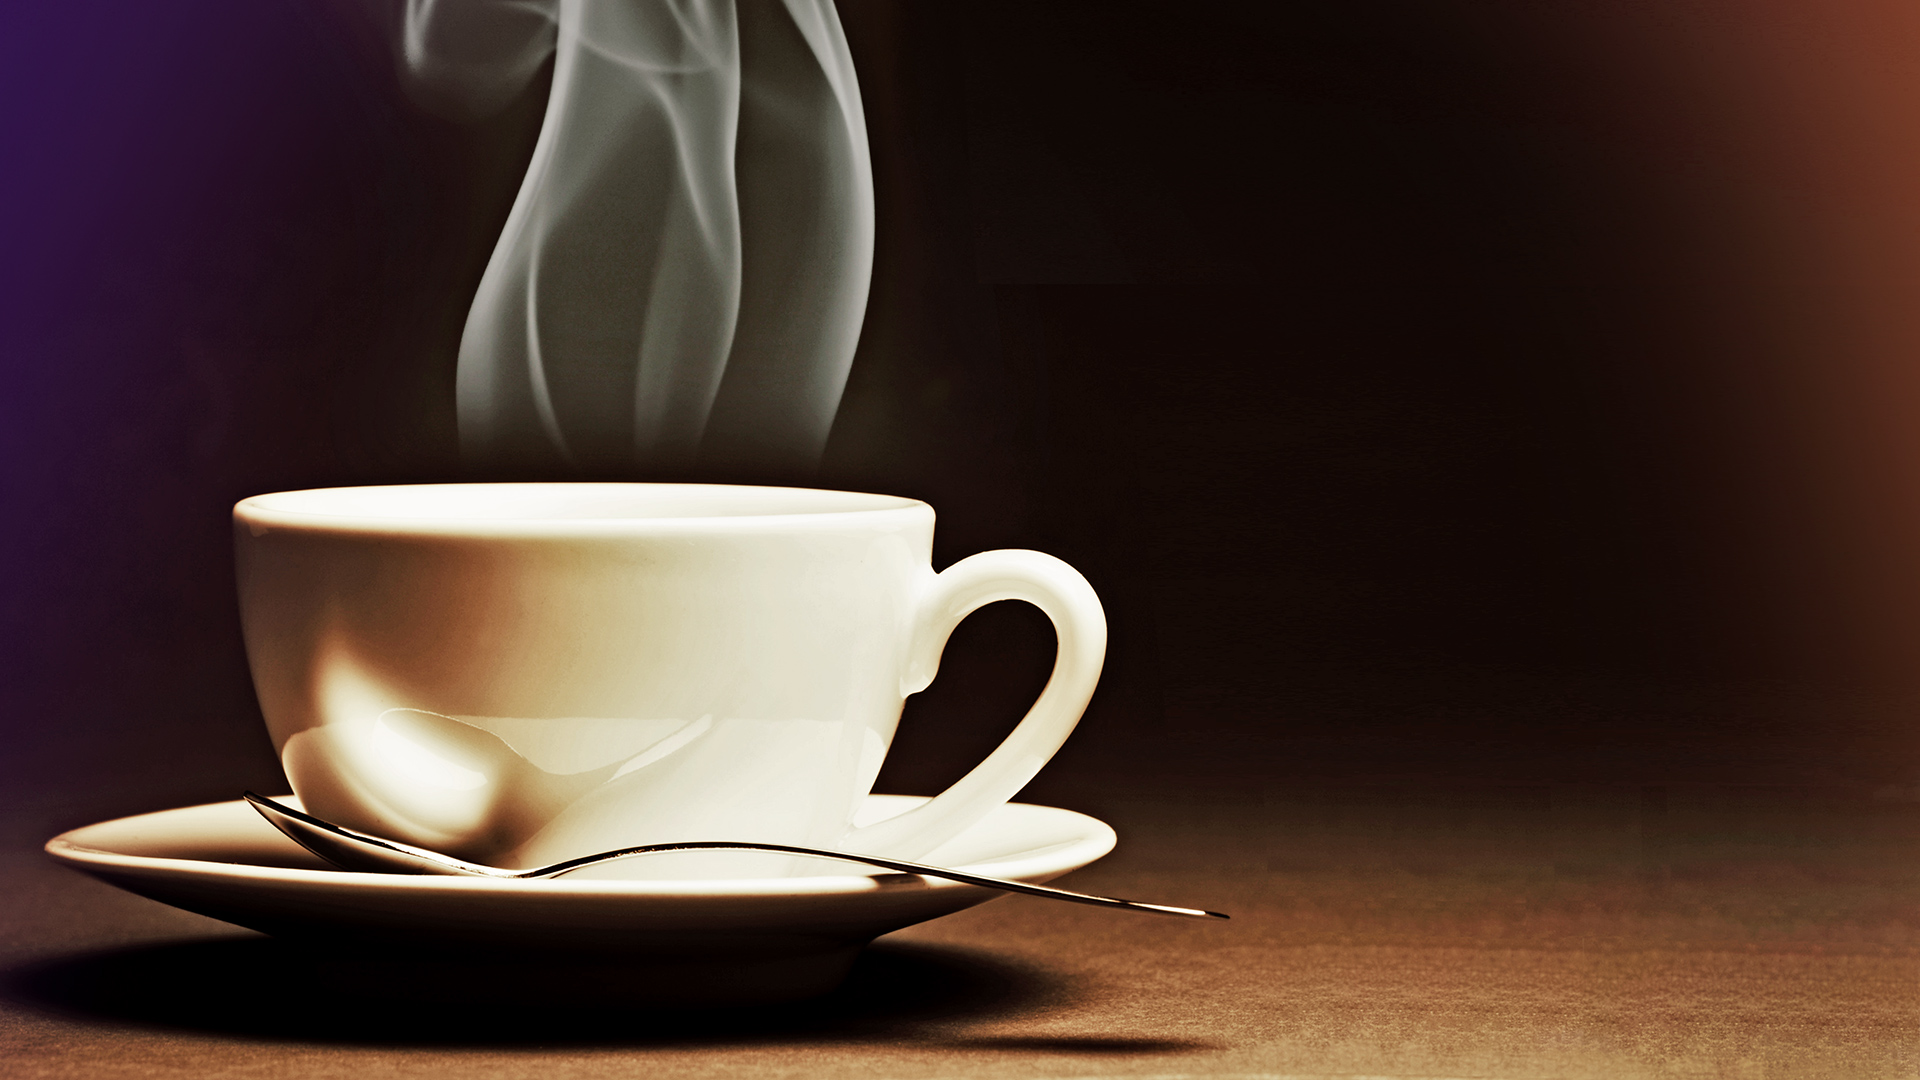 3021416-poster-p-1-how-a-cup-of-tea-makes-you-happier-healthier-and-more-productive.jpg (1920×1080)